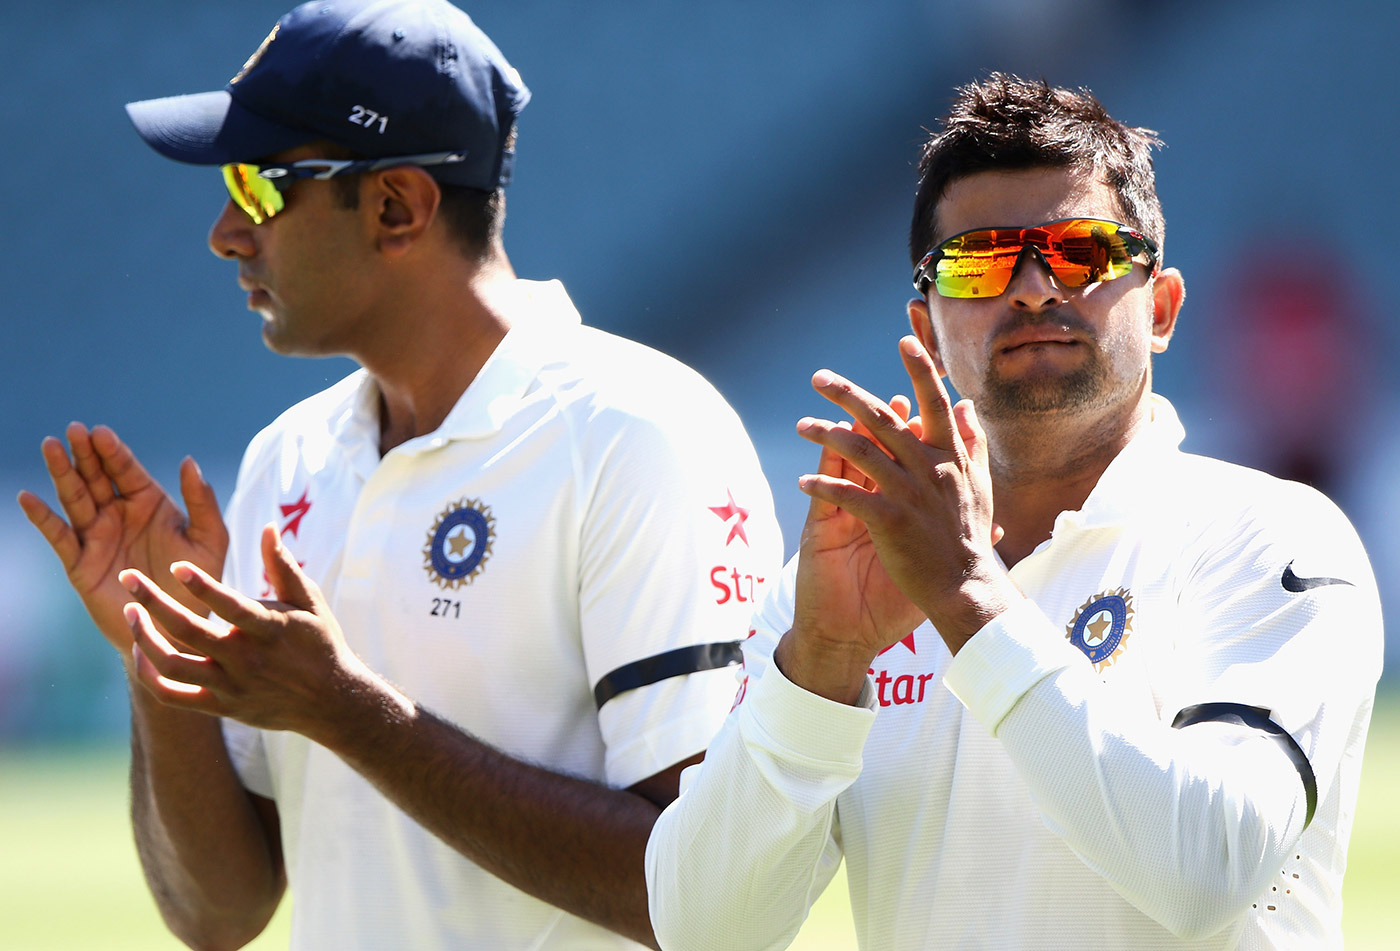 It turns here: with Suresh Raina in Adelaide 2014, where Ashwin sat out the Test, and where B Arun diagnosed the problem with his technique